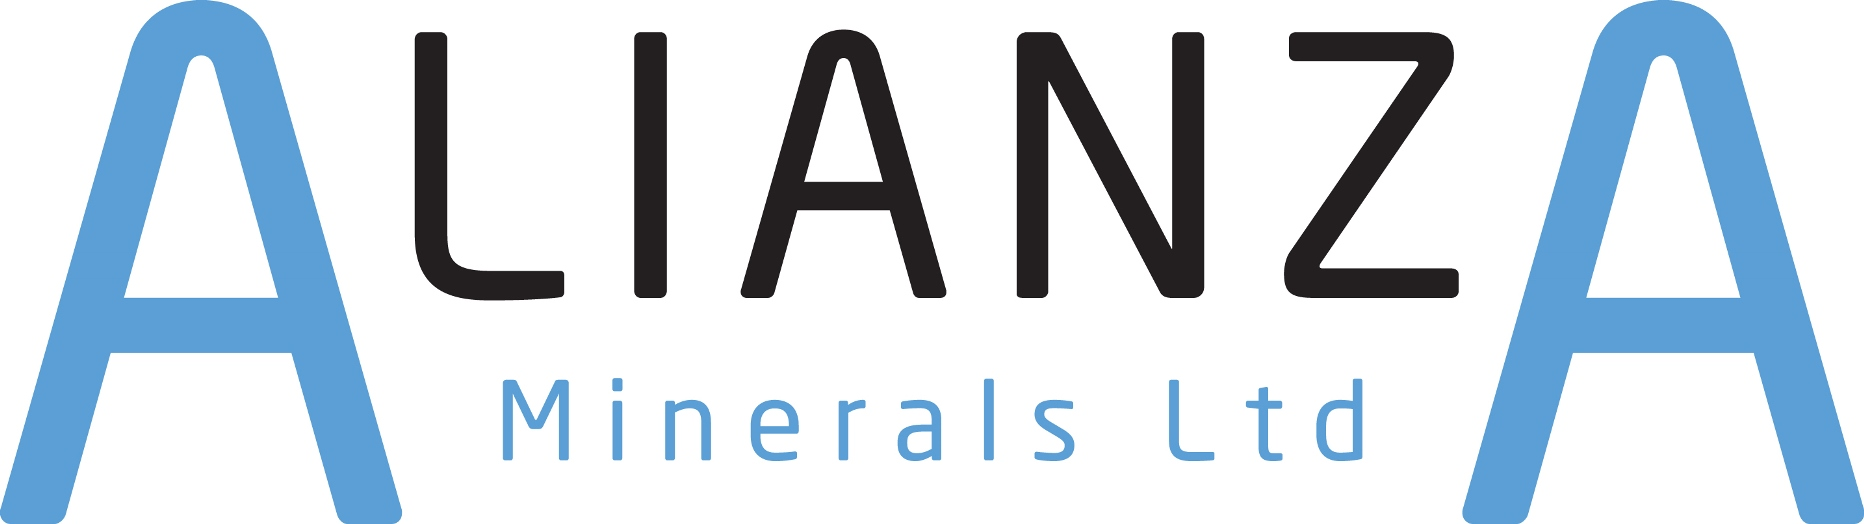 Alianza Minerals intersects 455 g/t silver over 1 metre at Haldane Silver Property, YT